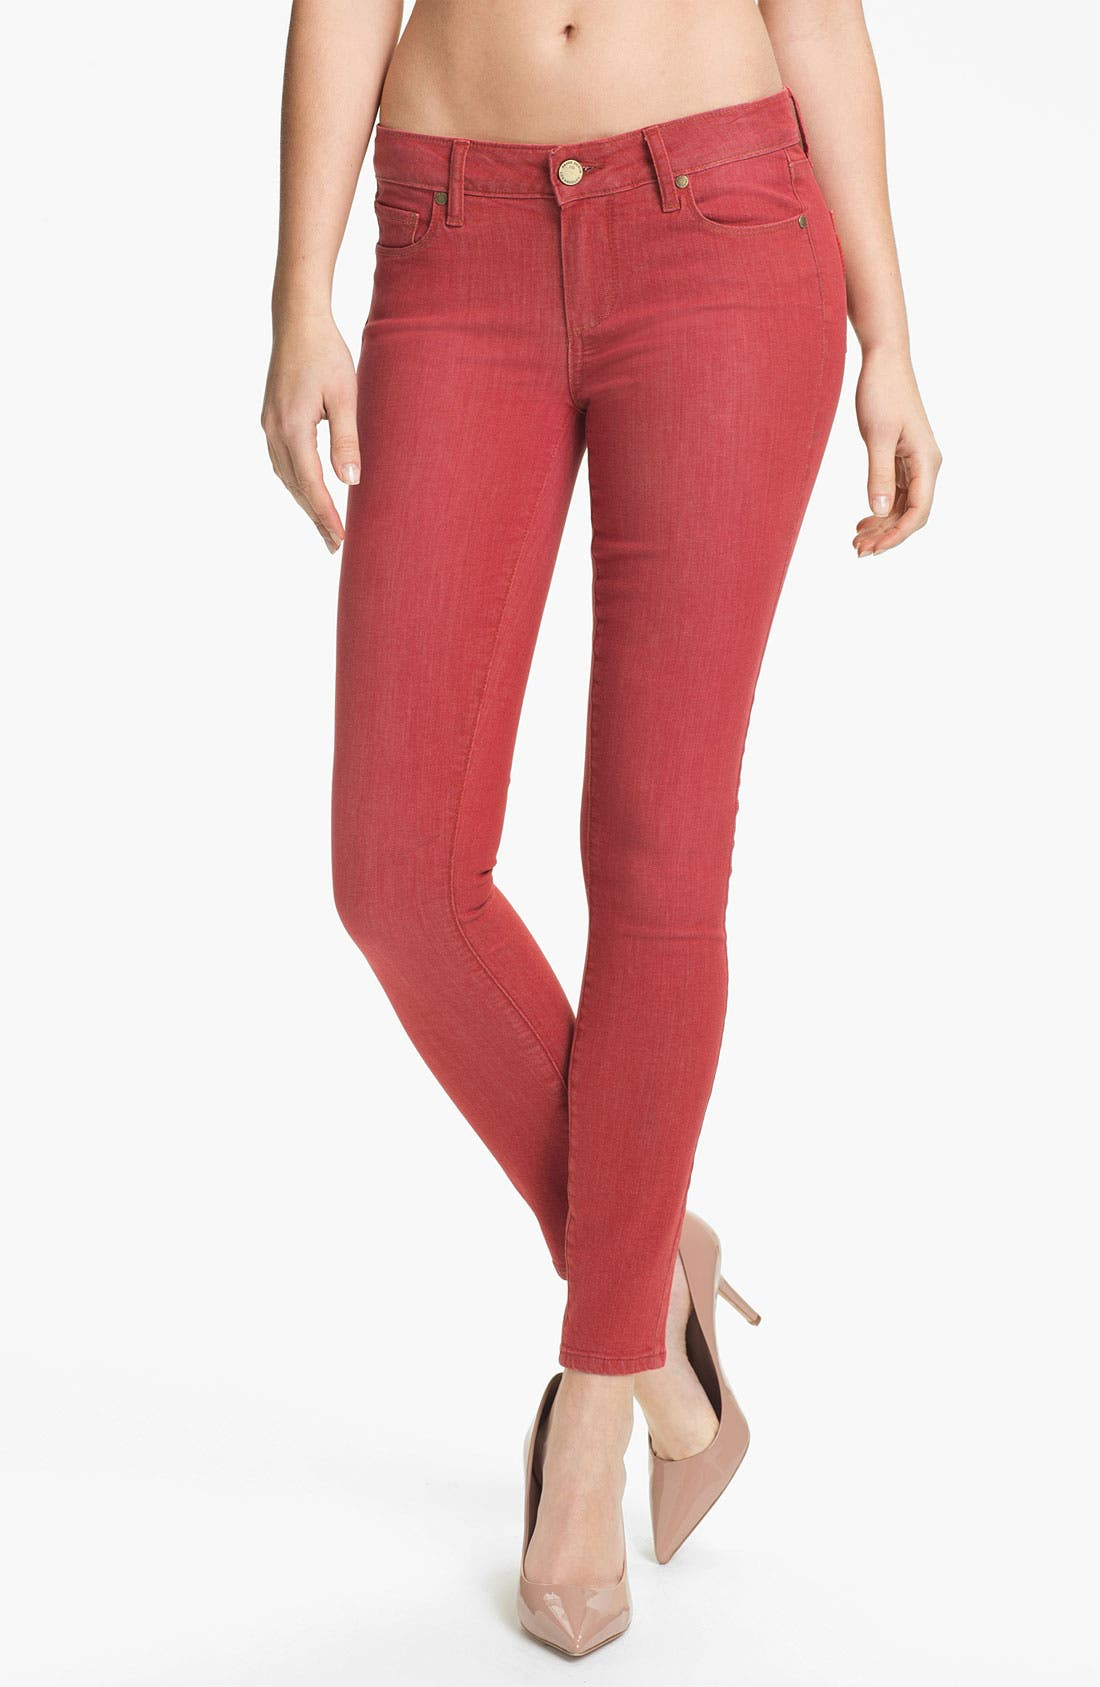 Alternate Image 1 Selected - Paige Denim 'Verdugo' Skinny Stretch Denim Jeans (Vintage Red)